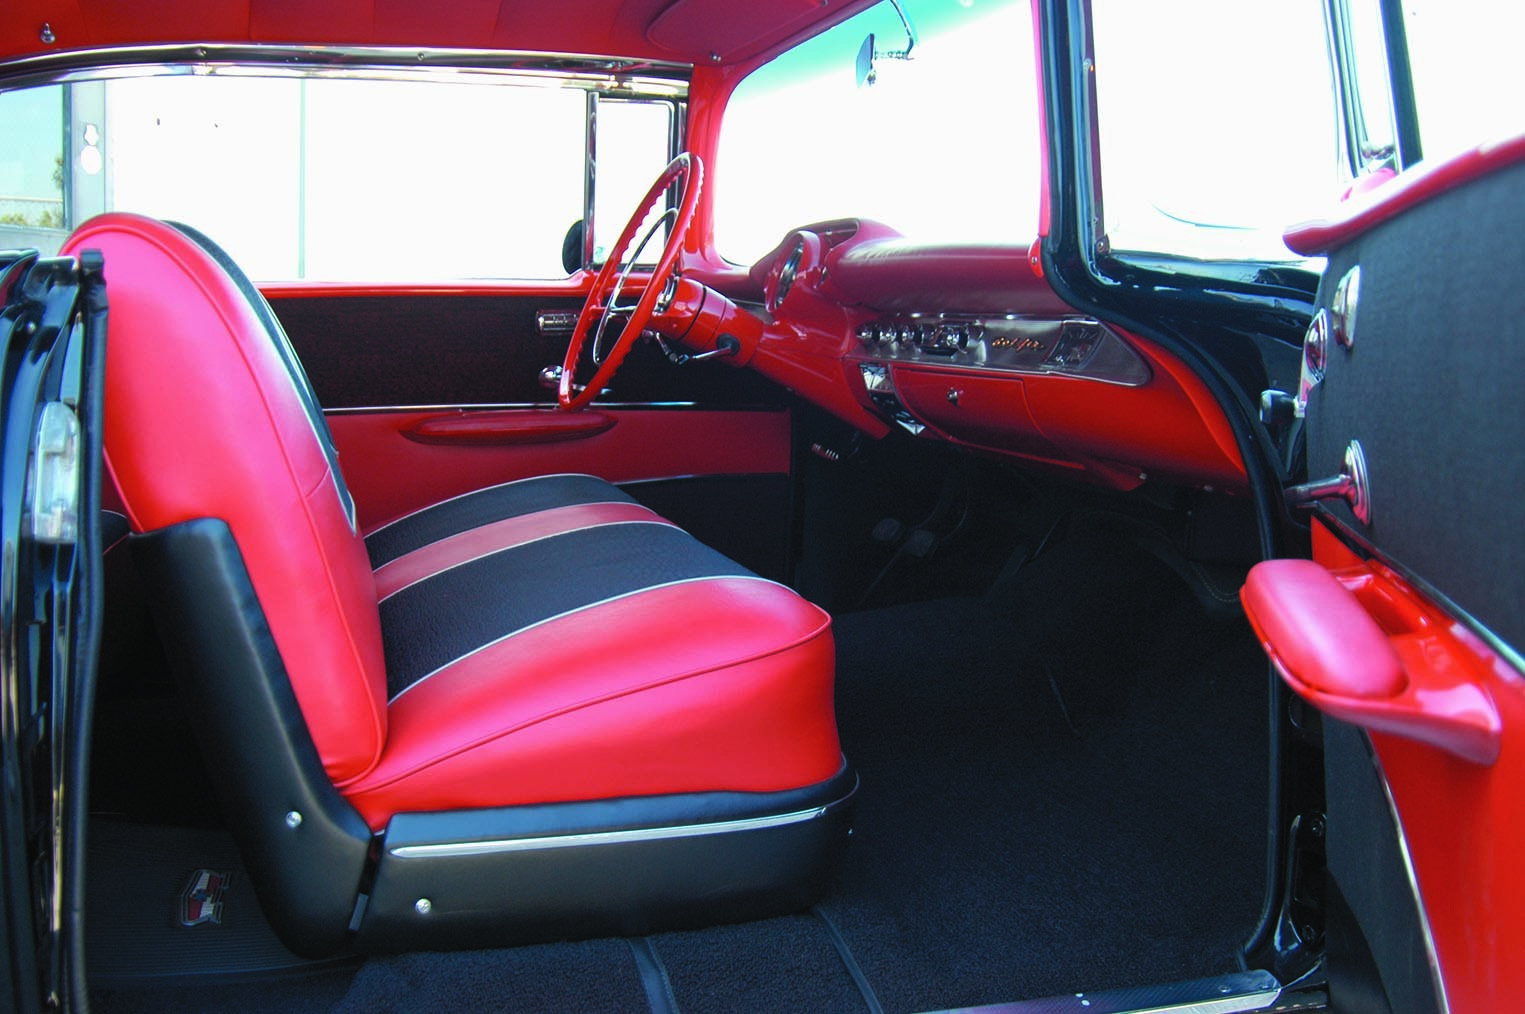 1957 Chevy interior